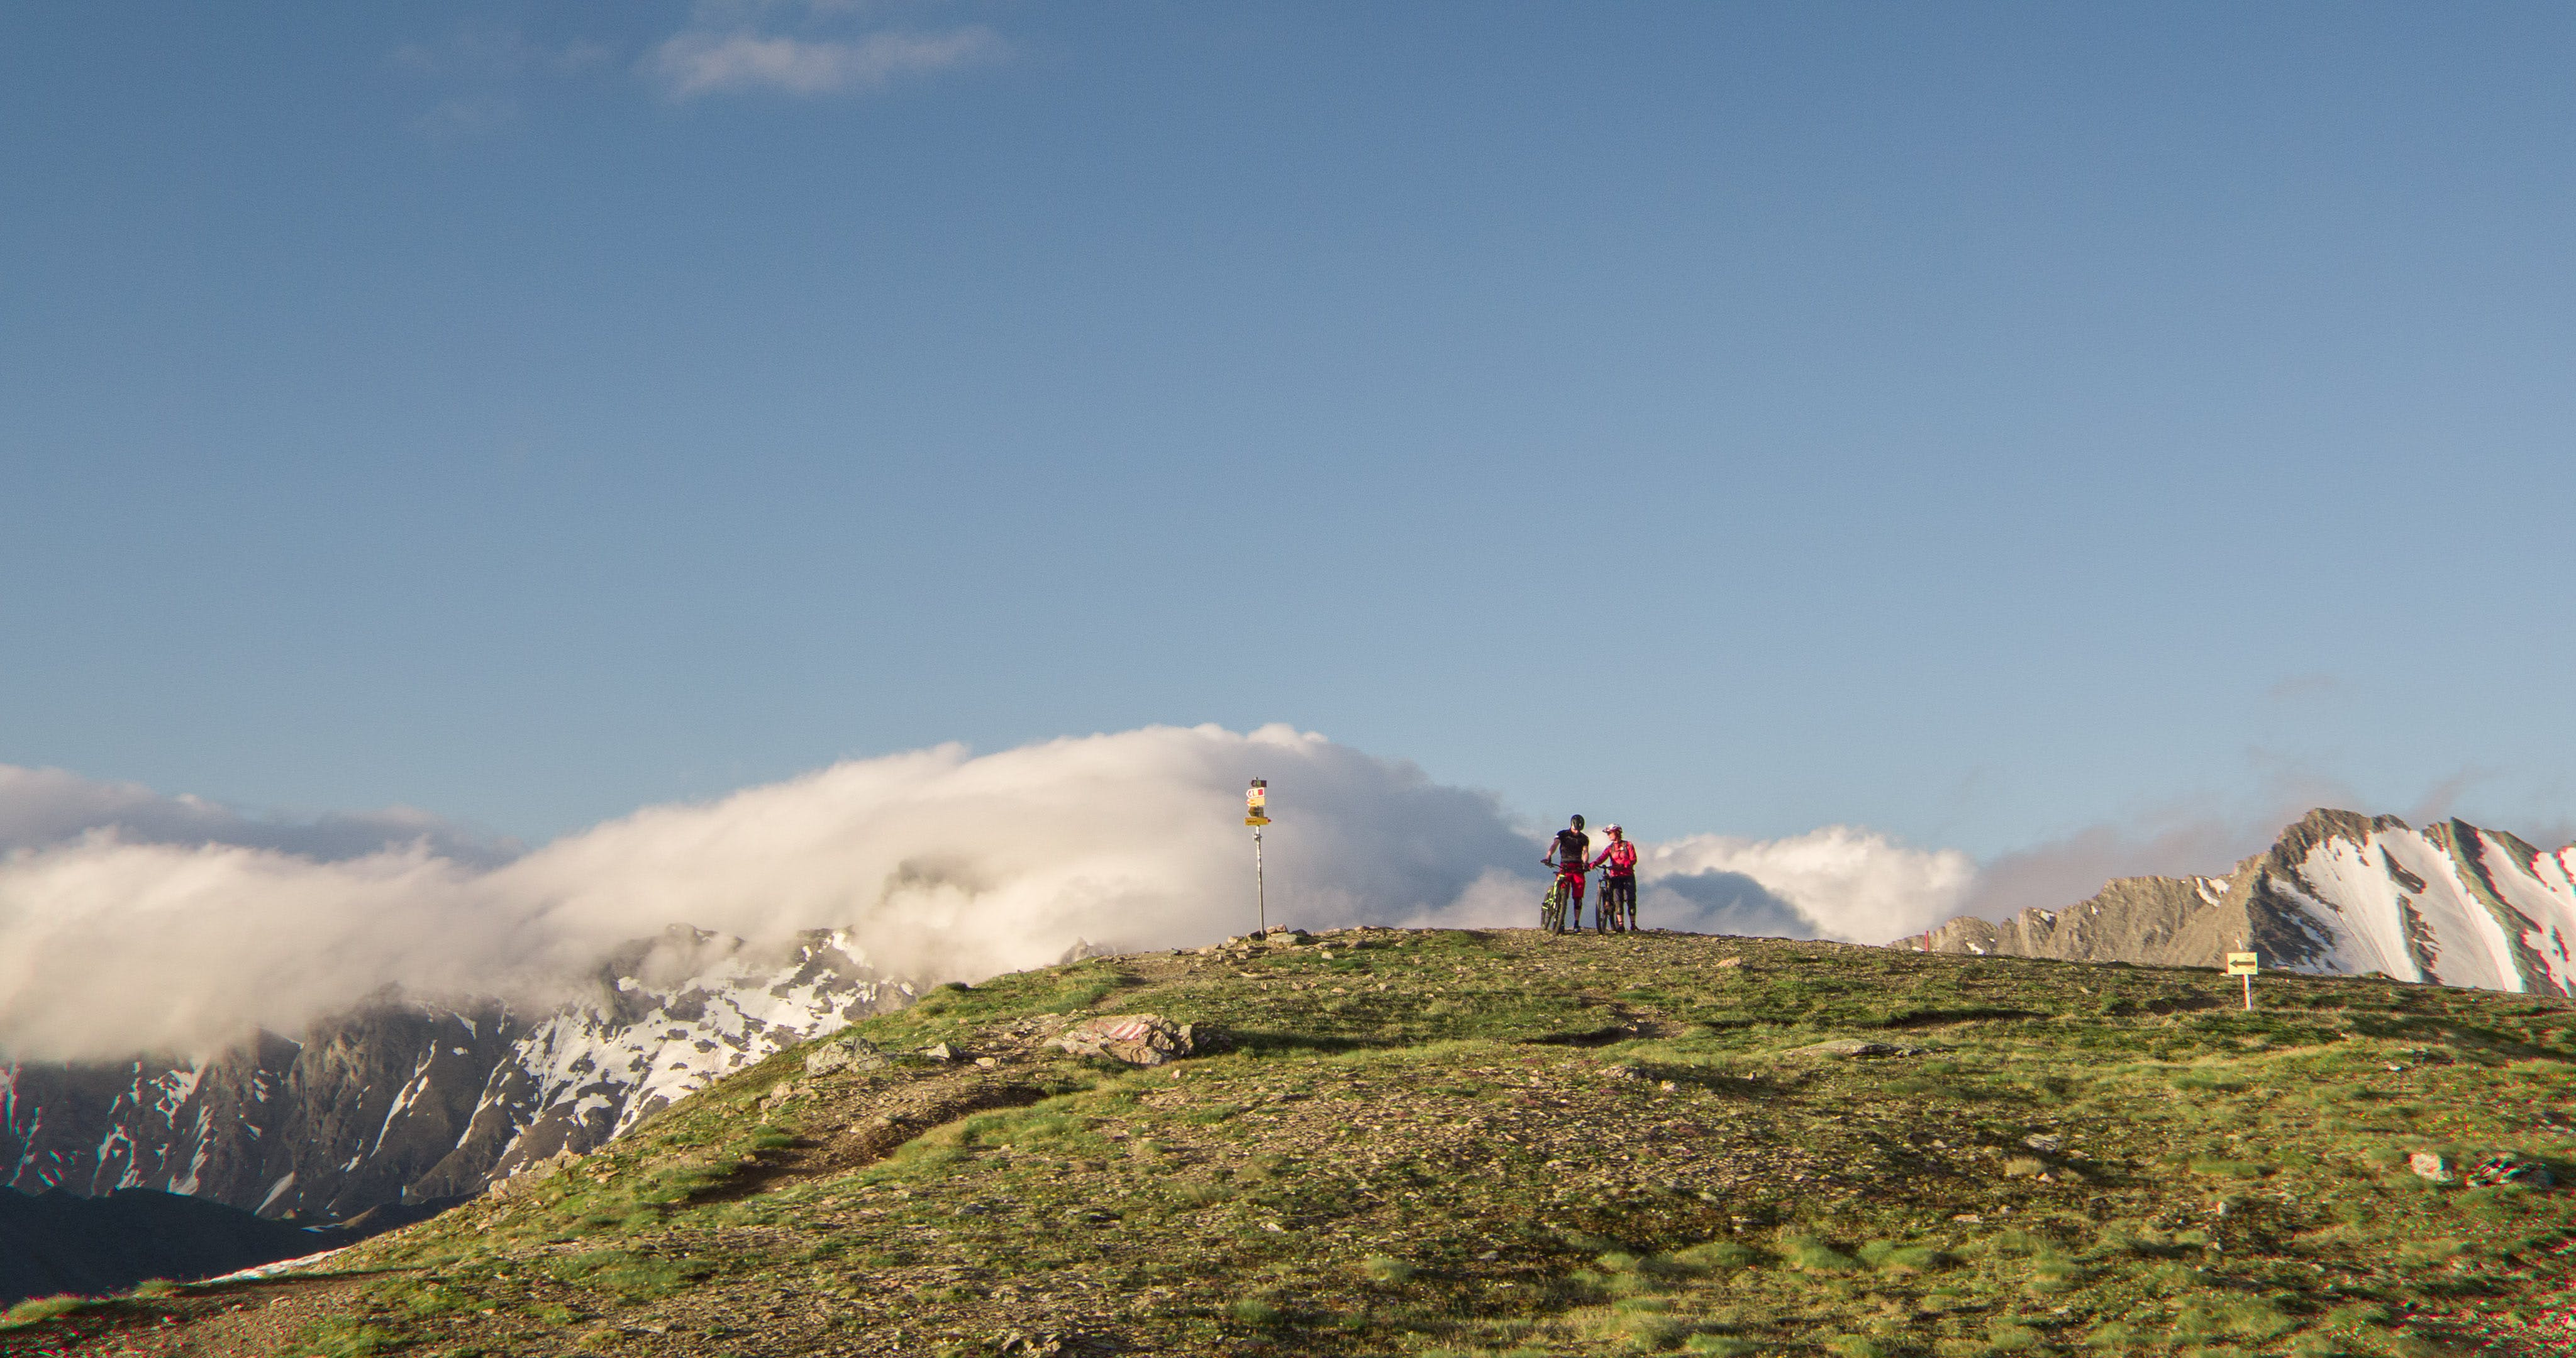 Two Man Standing on Mountain Near Mountain Covered by Snows